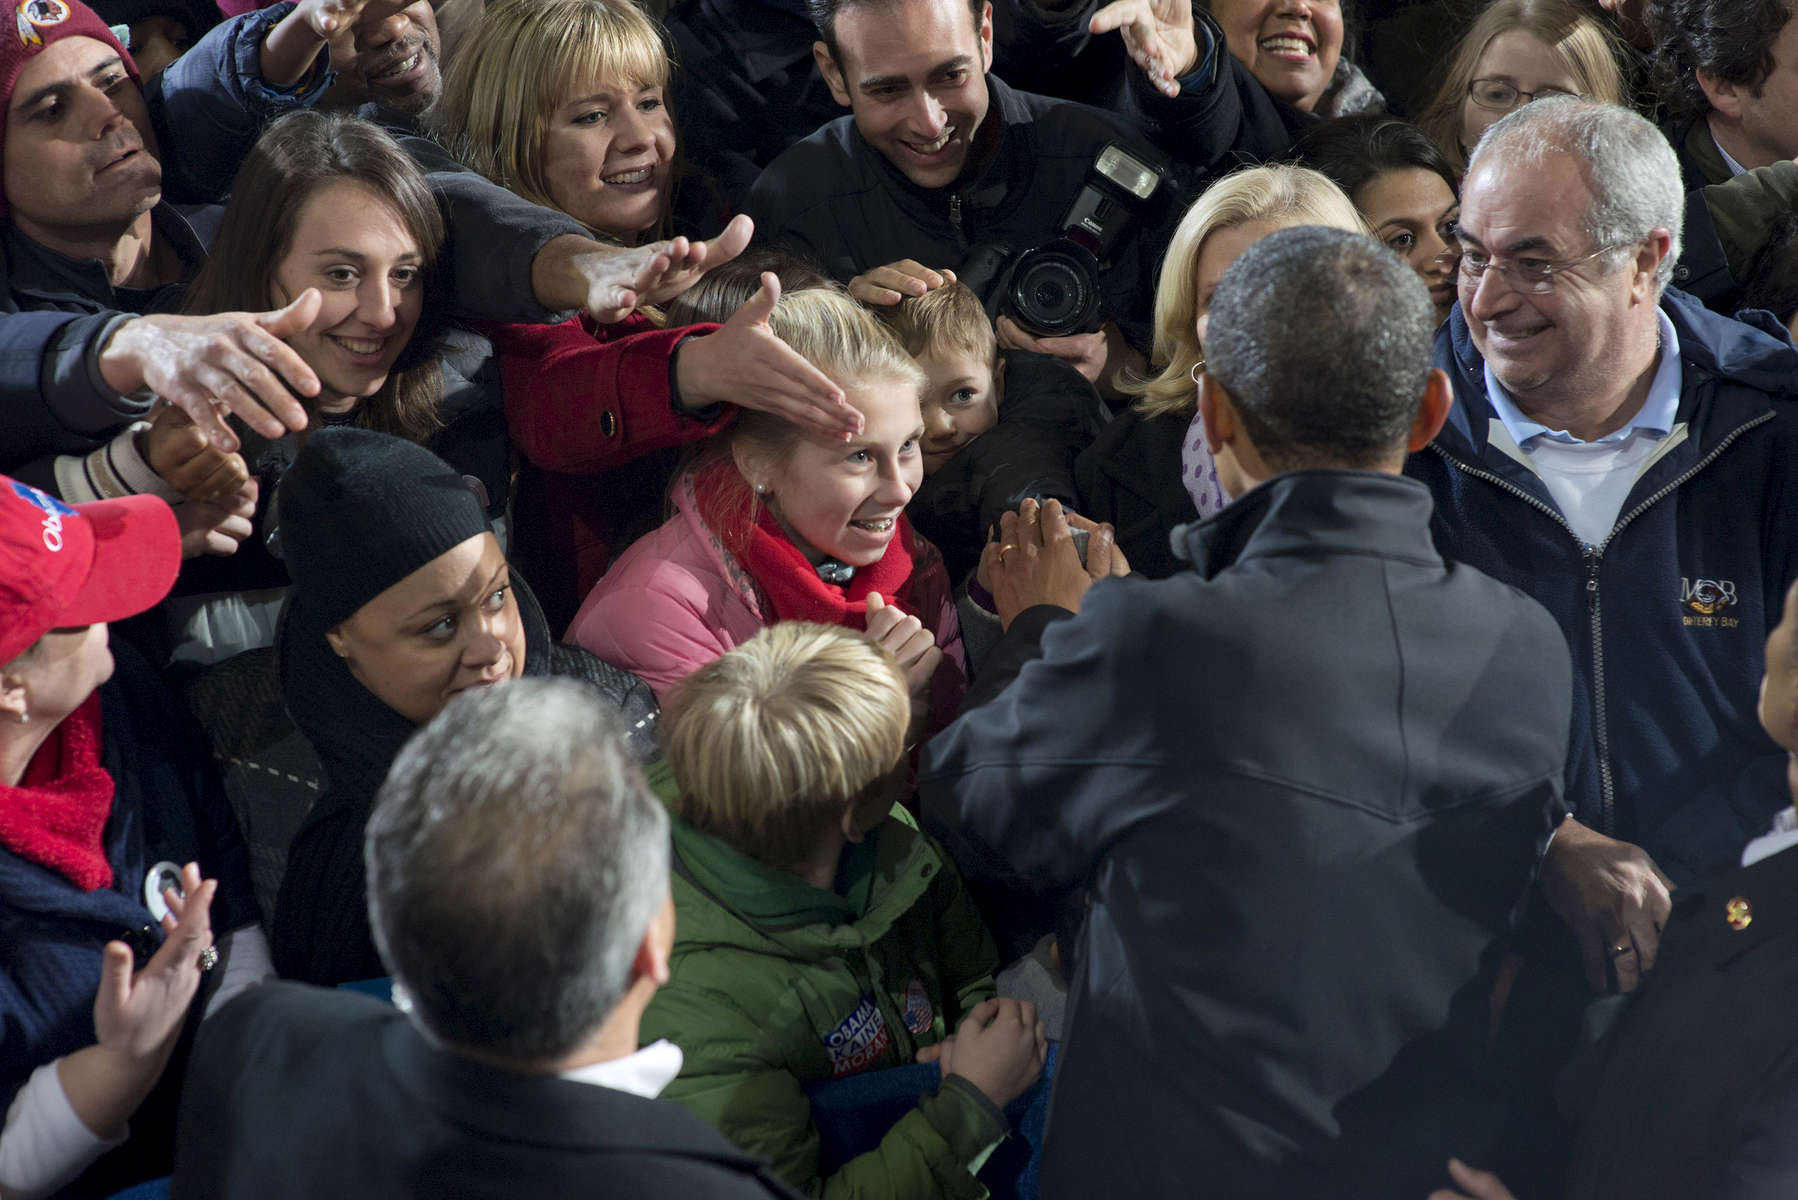 November 3, 2012 - Bristow, VA:  President Barack Obama hl's the hand of a little boy after a rally in Bristow, VA a few days before the 2012 election. (Scout Tufankjian for Obama for America/Polaris)